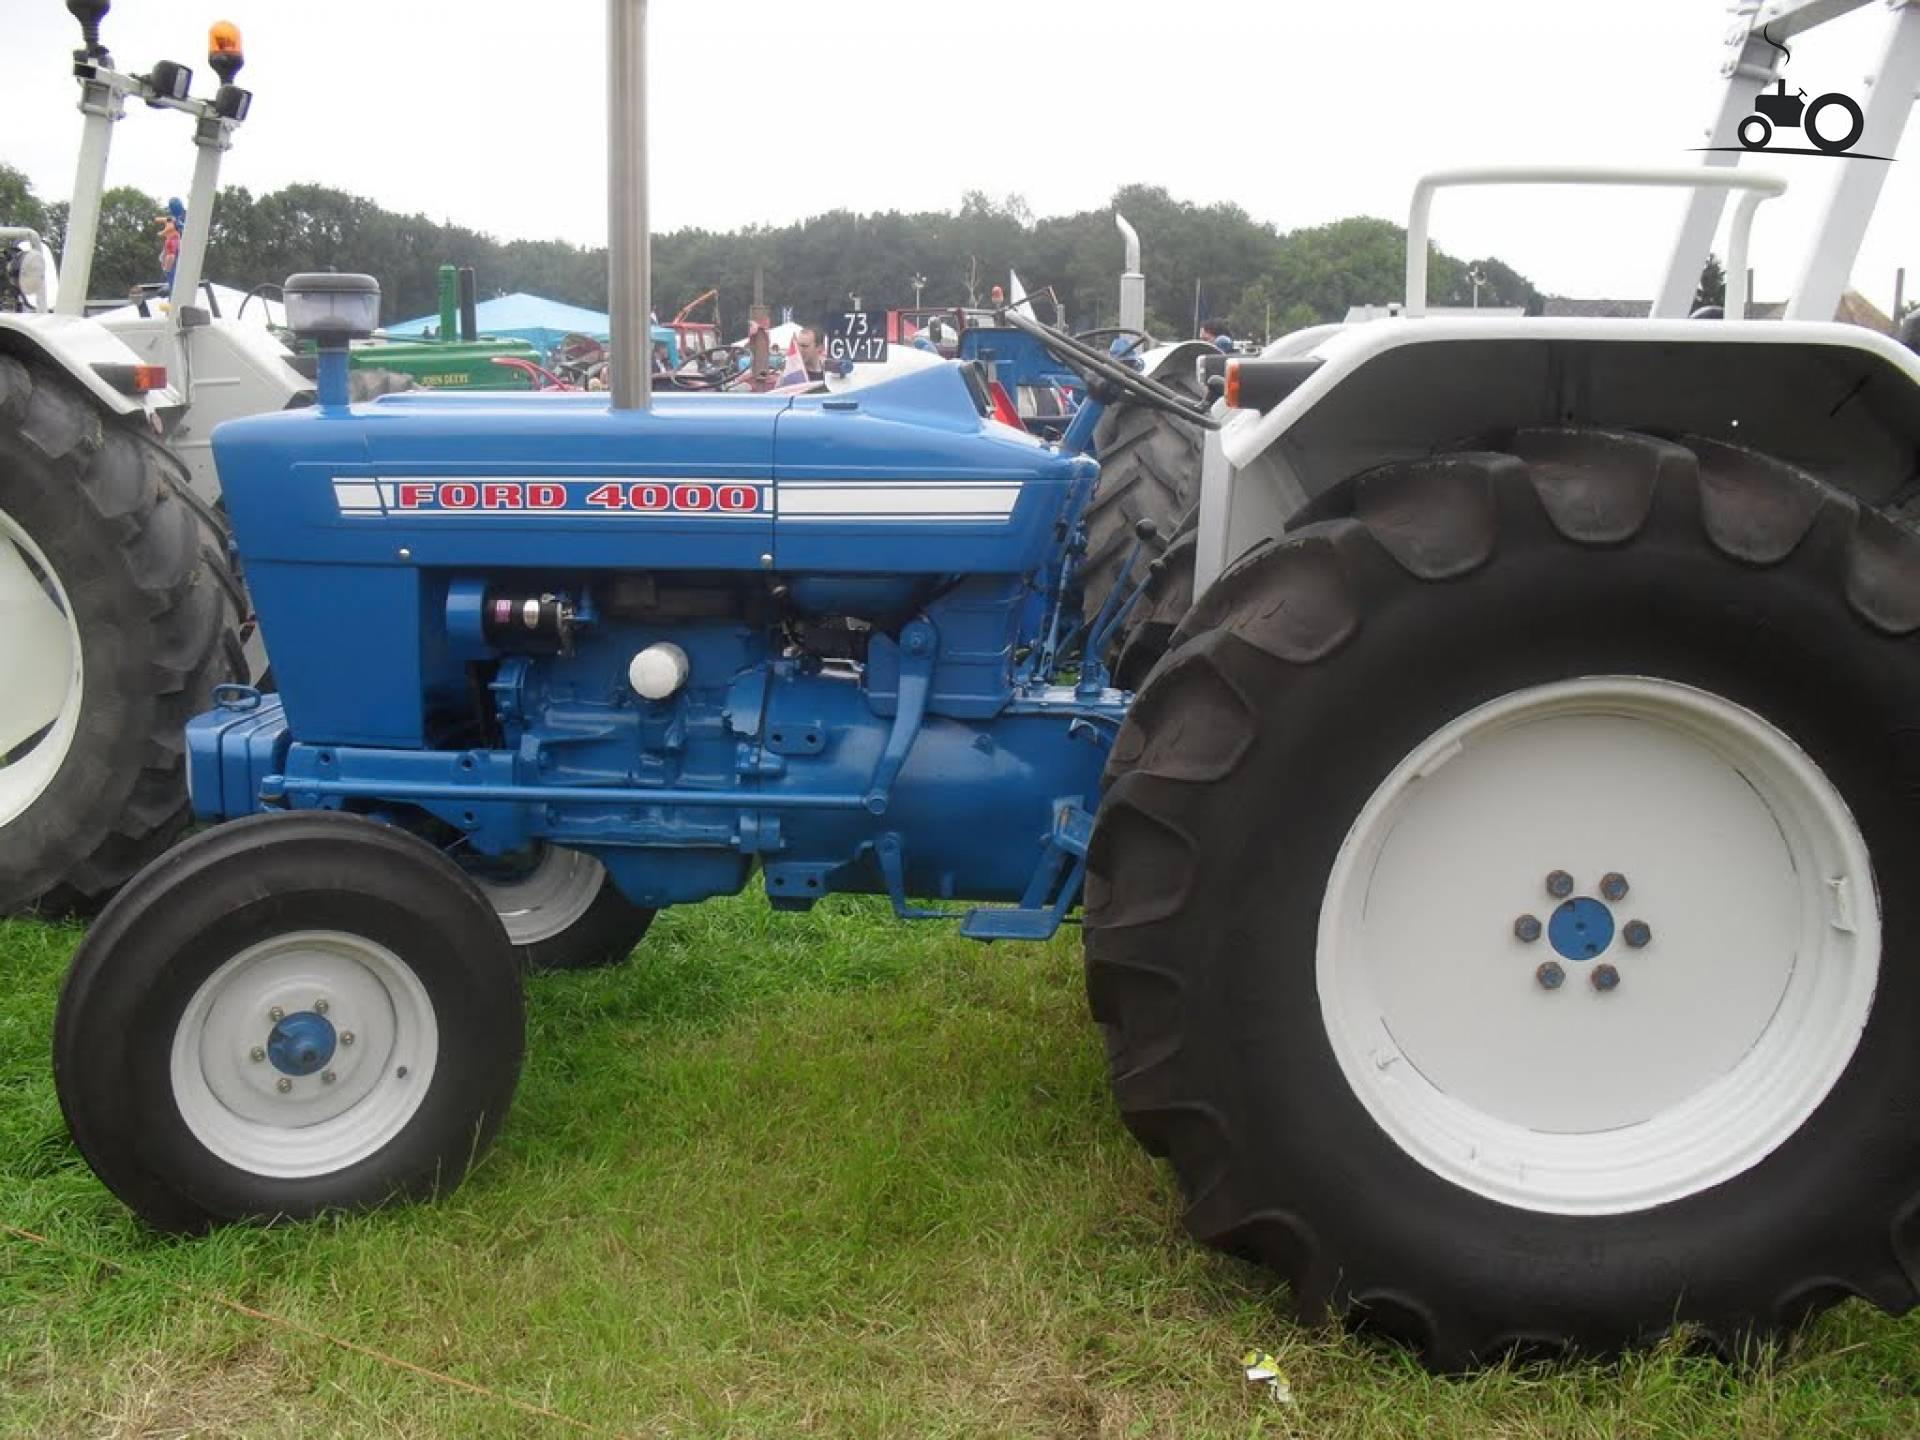 Ford 4000 Diesel Tractor Manual : Ford tractor manual ebay electronics cars